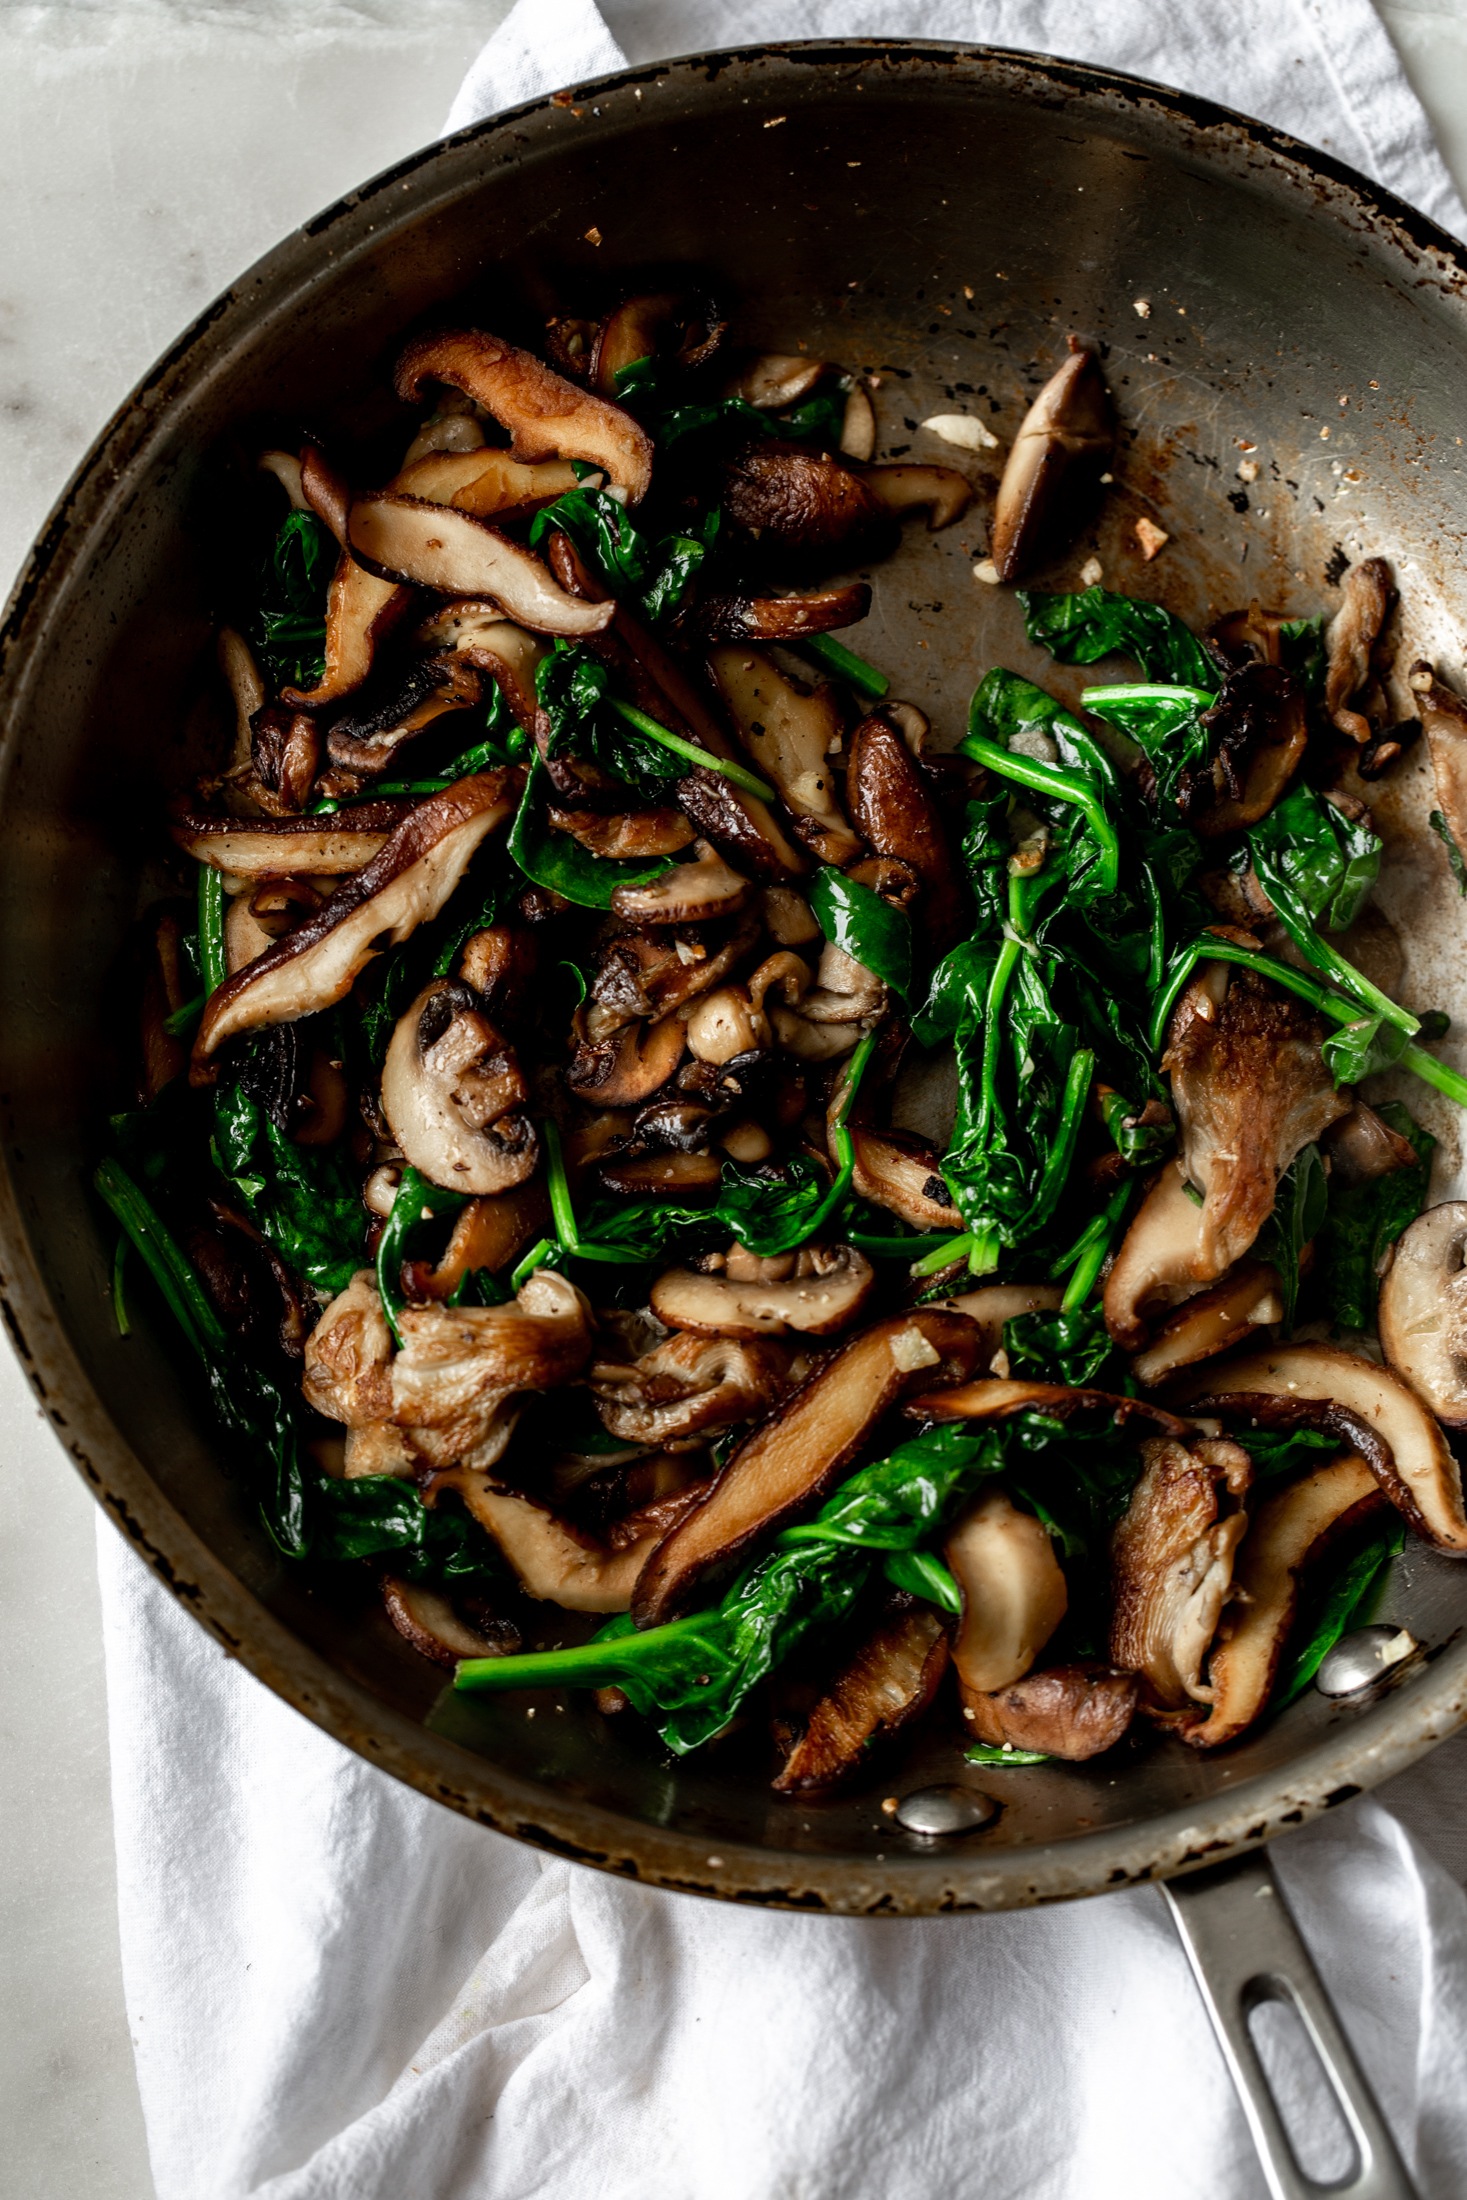 Mushroom and Spinach mixture sauteed